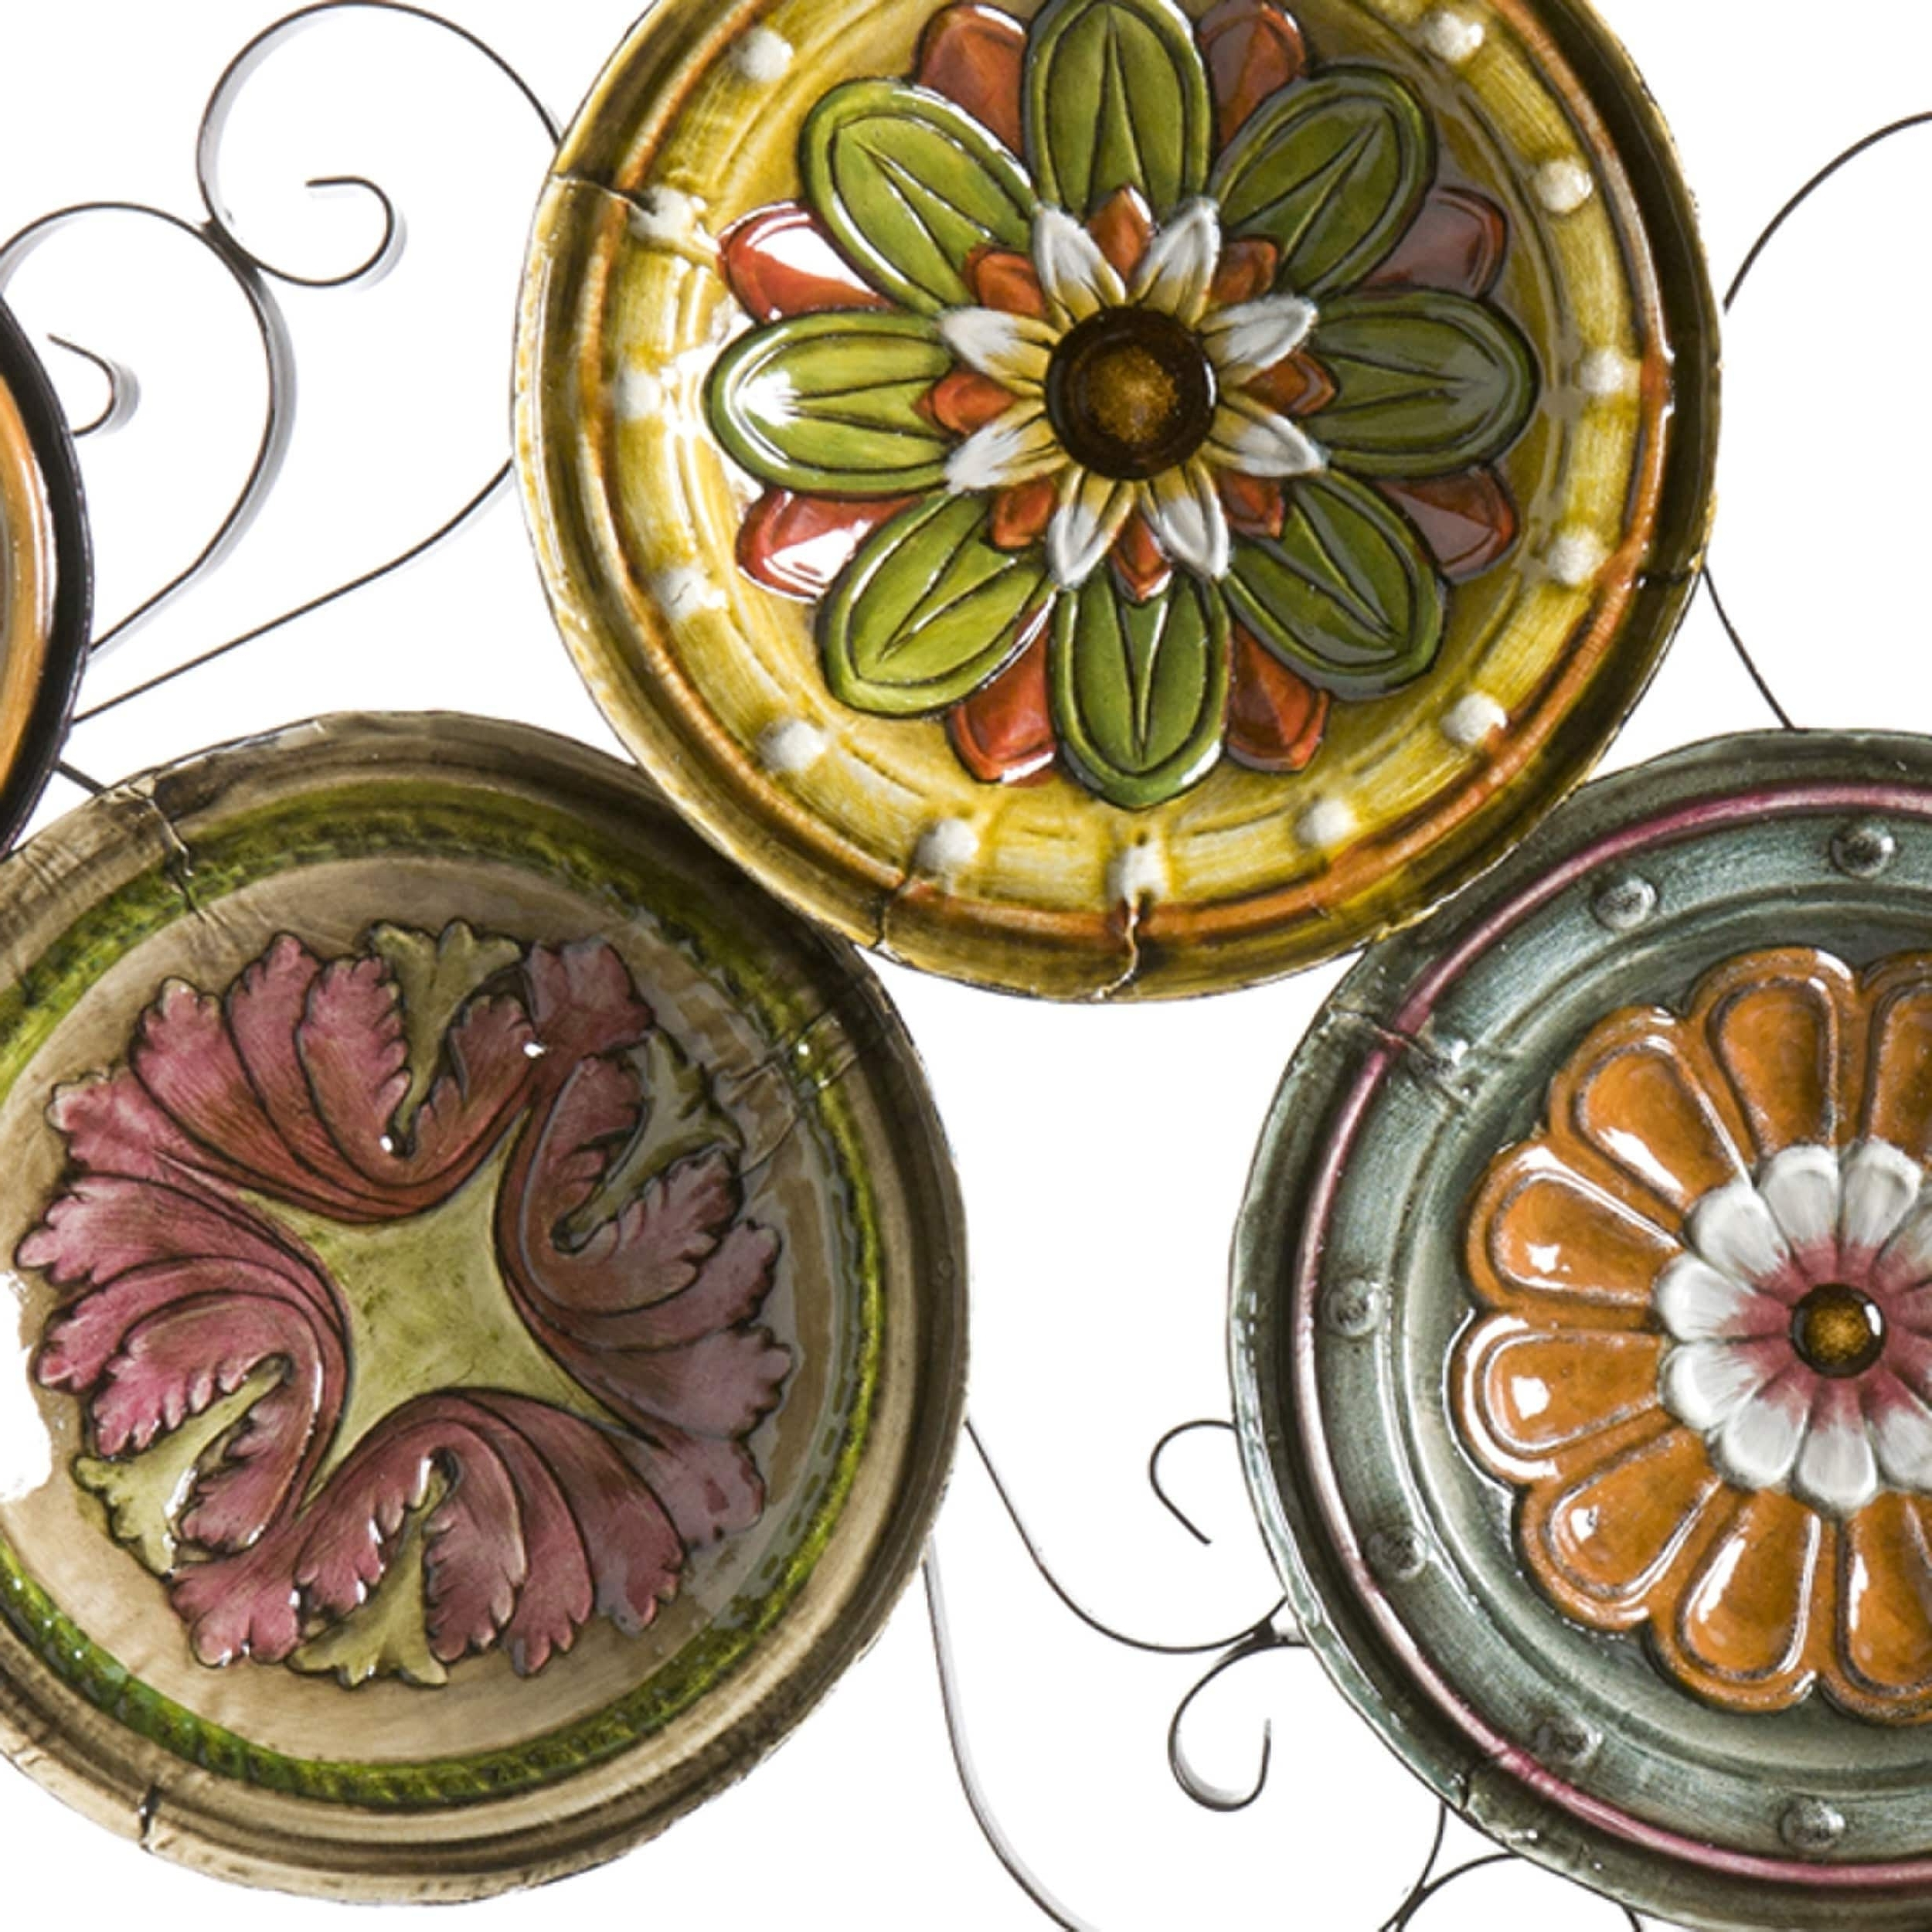 Italian Plates Wall Art With Recent Harper Blvd Forli Scattered 6 Piece Italian Plates Wall Art Set (View 7 of 15)